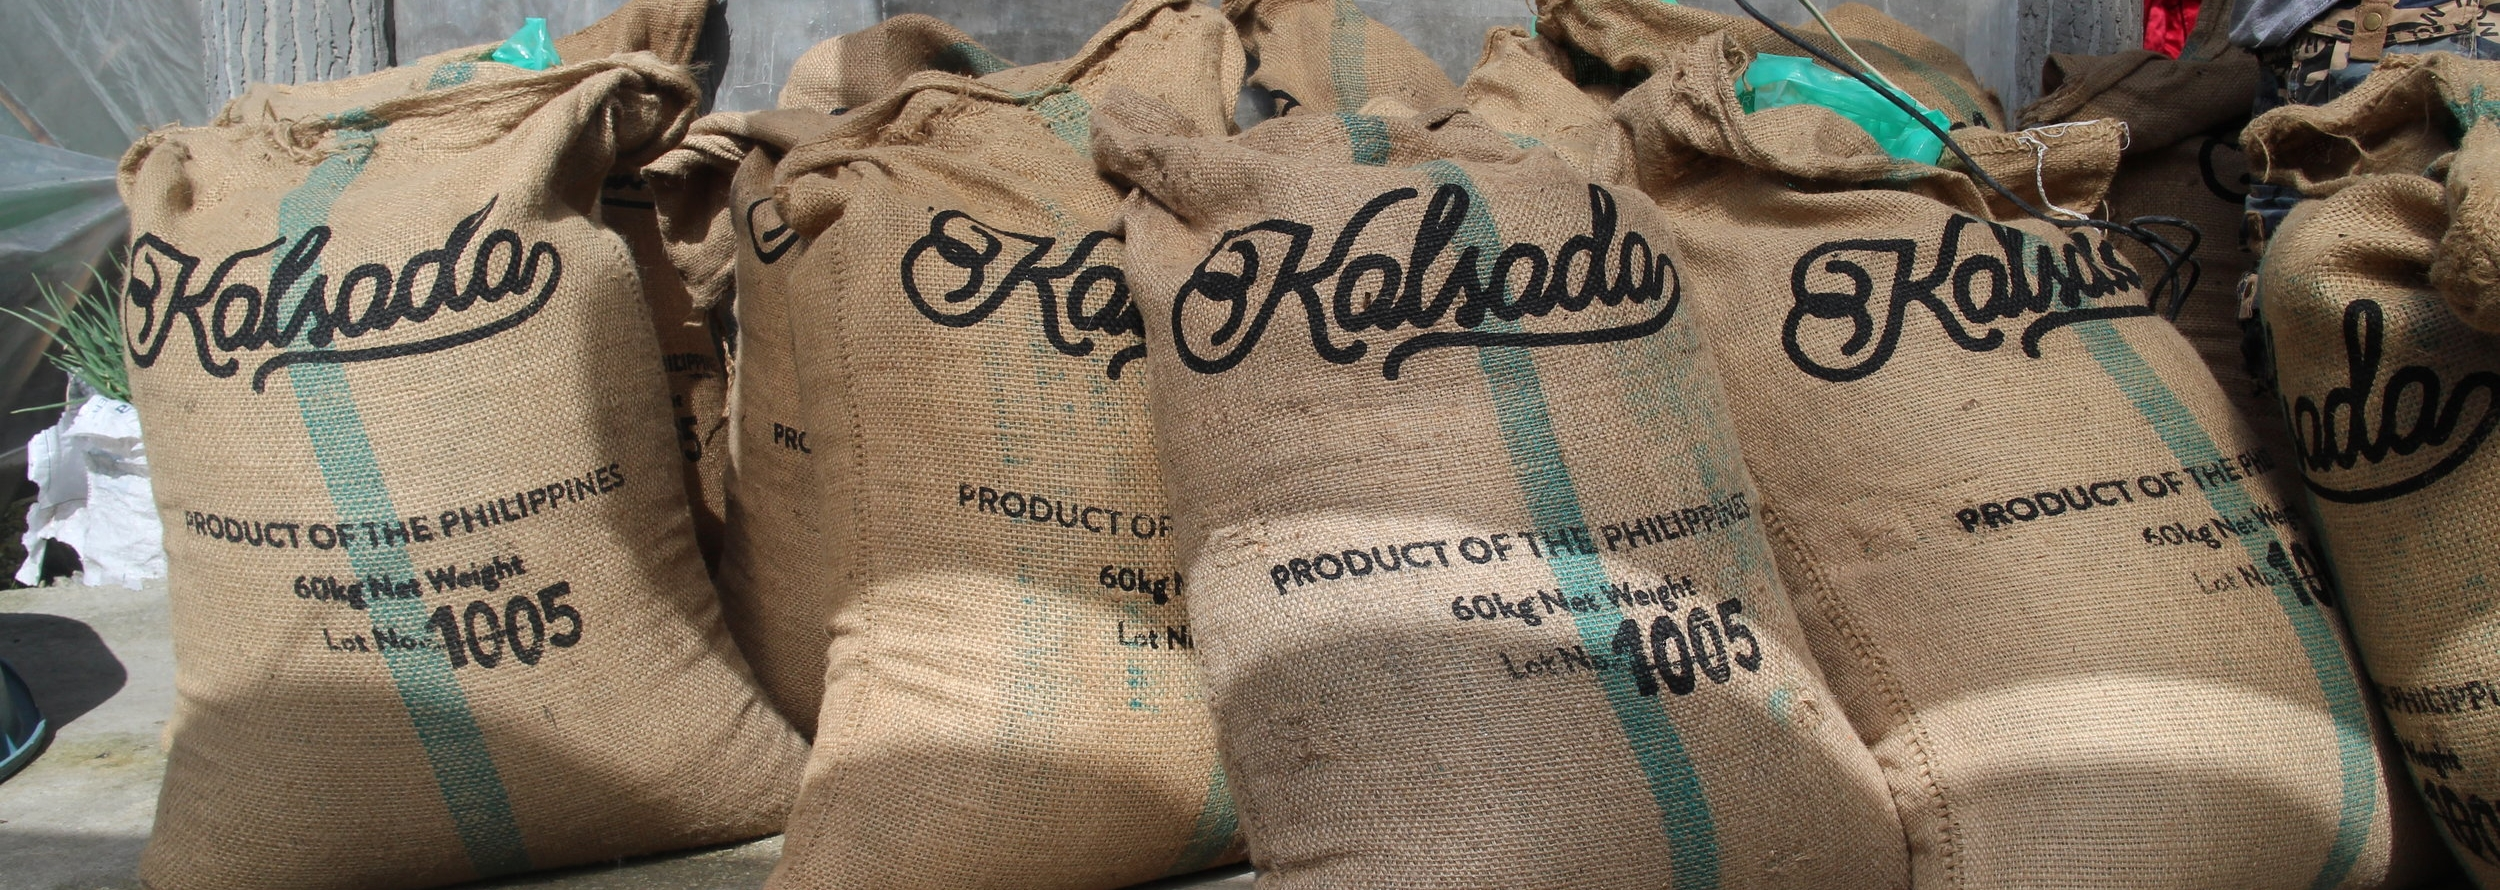 Kalsada coffee bags, ready for export.